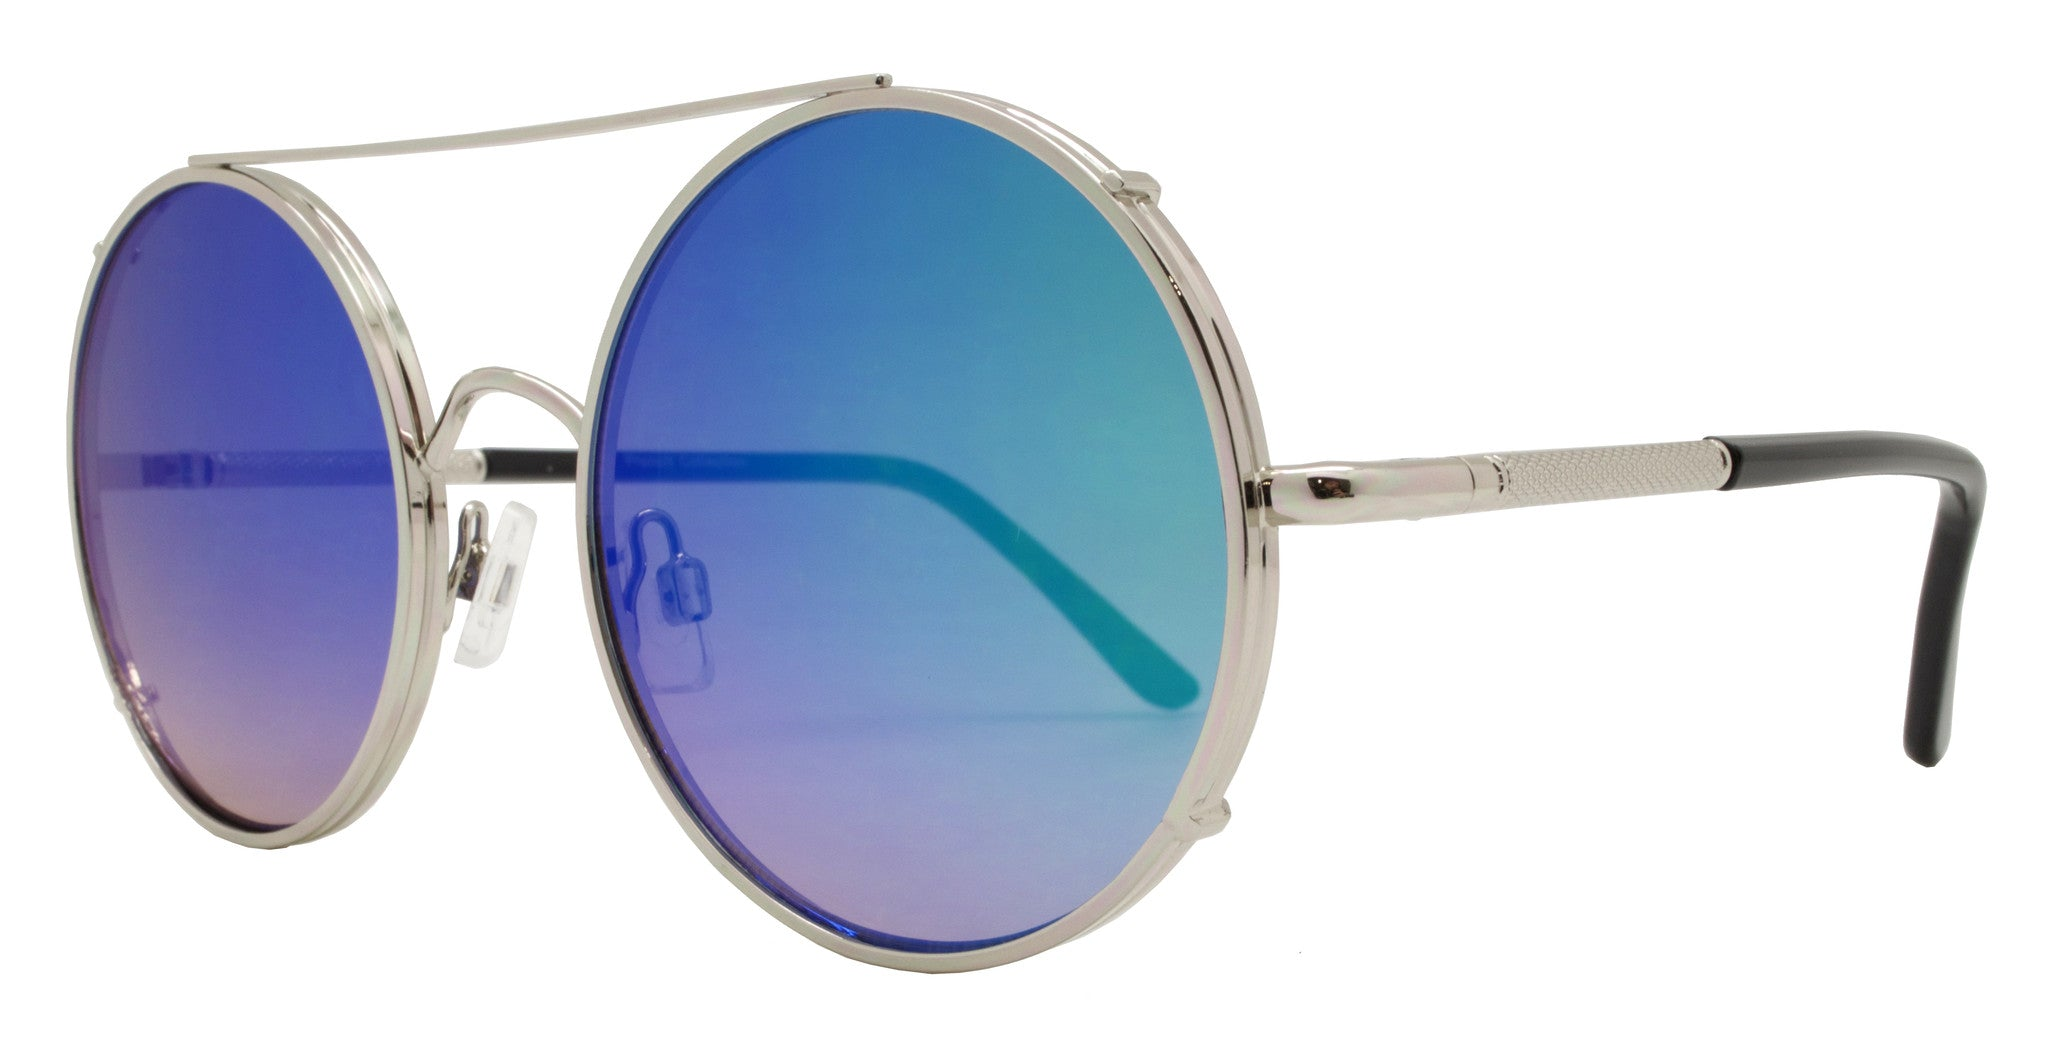 Dynasol Eyewear - Wholesale Sunglasses - FC 6229 RVC - Flat Lens Round Color Mirror Thick Metal Sunglasses - sunglasses